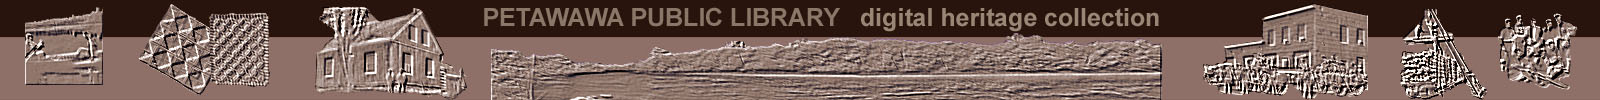 Petawawa Public Library Digital Collections